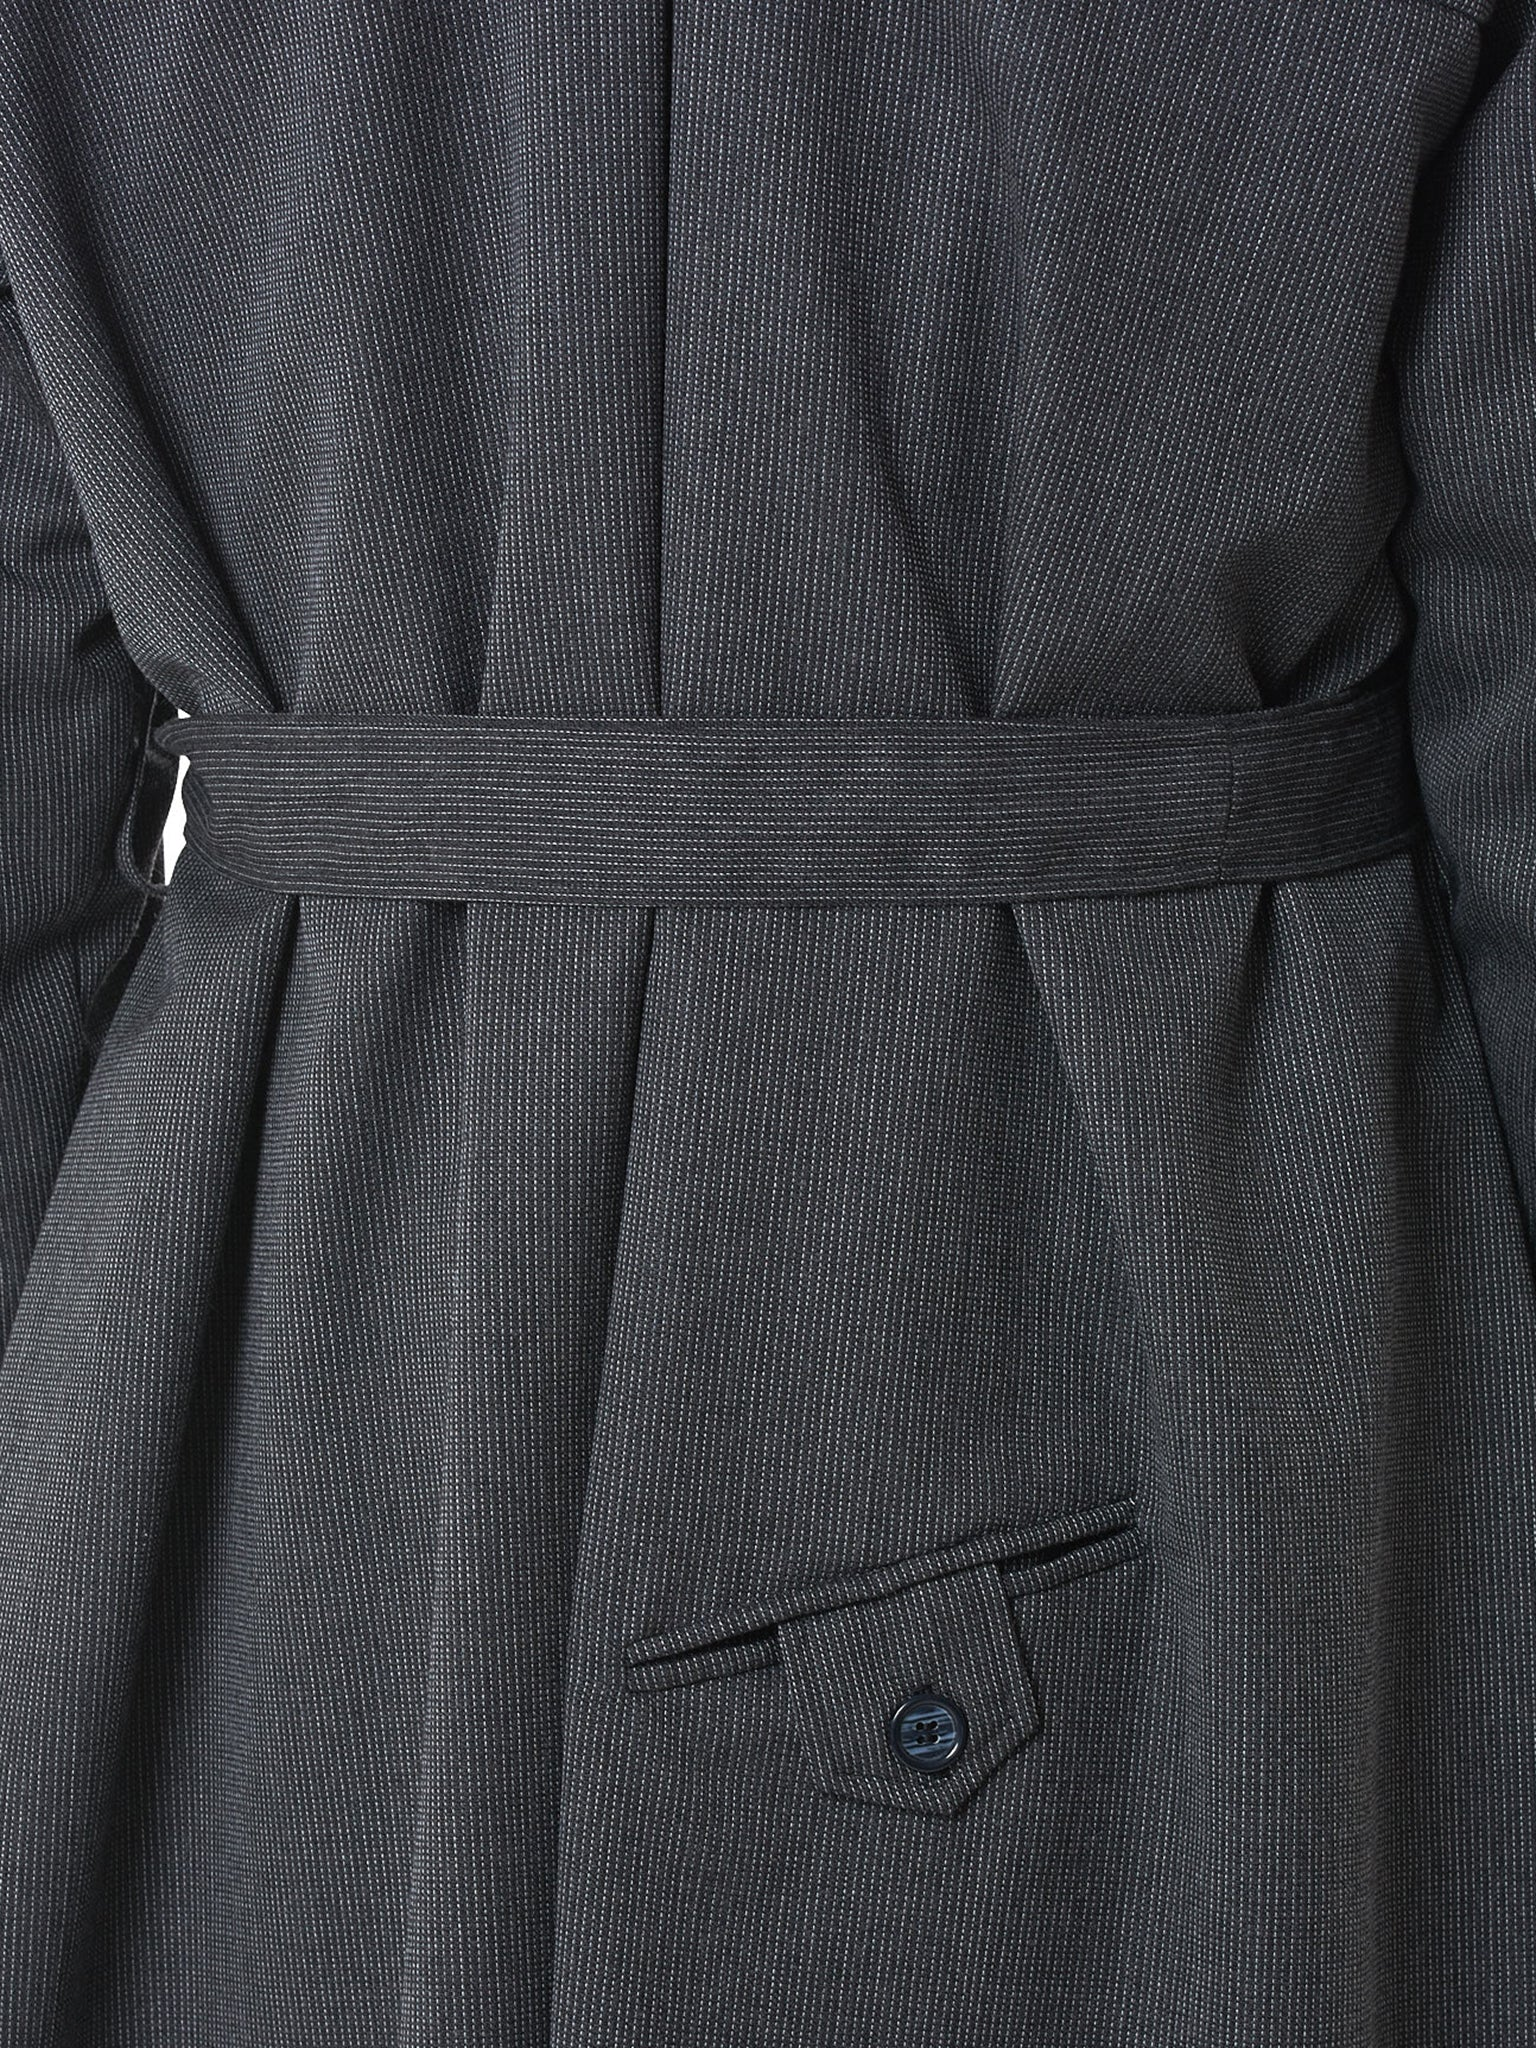 Sanchez-Kane Trench Coat - Hlorenzo Detail 3